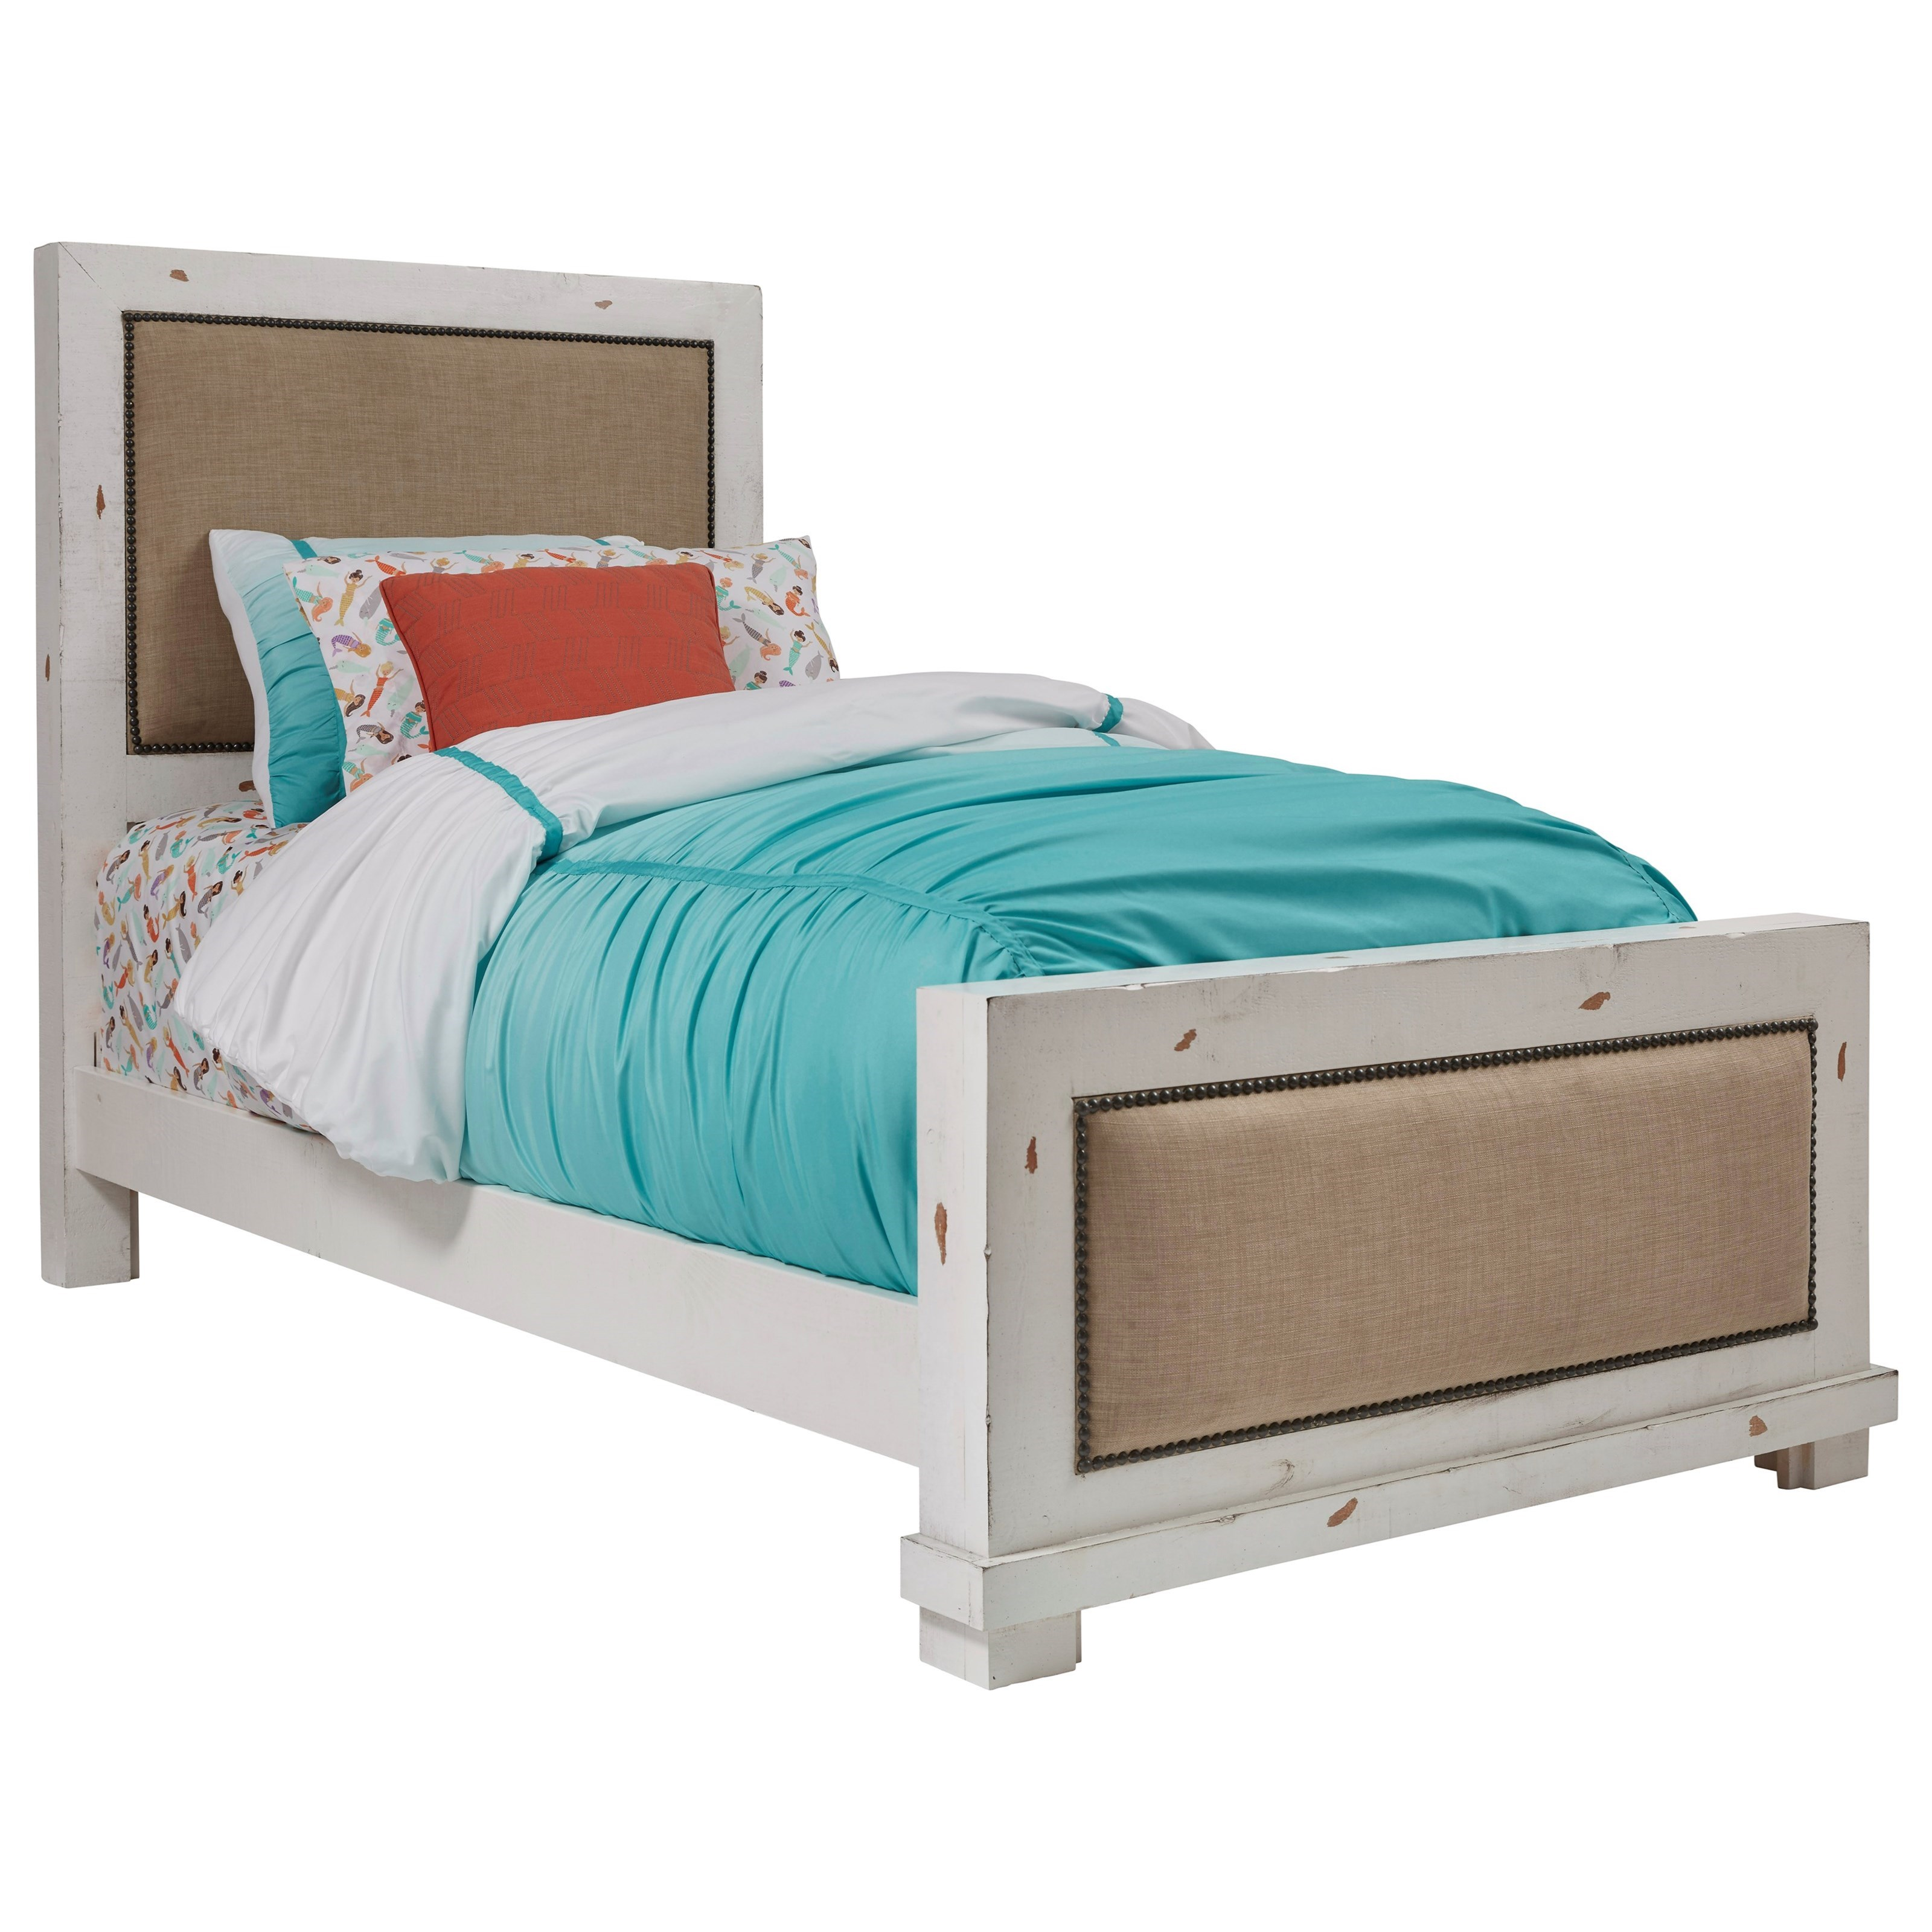 Willow Twin Upholstered Bed by Progressive Furniture at Dean Bosler's